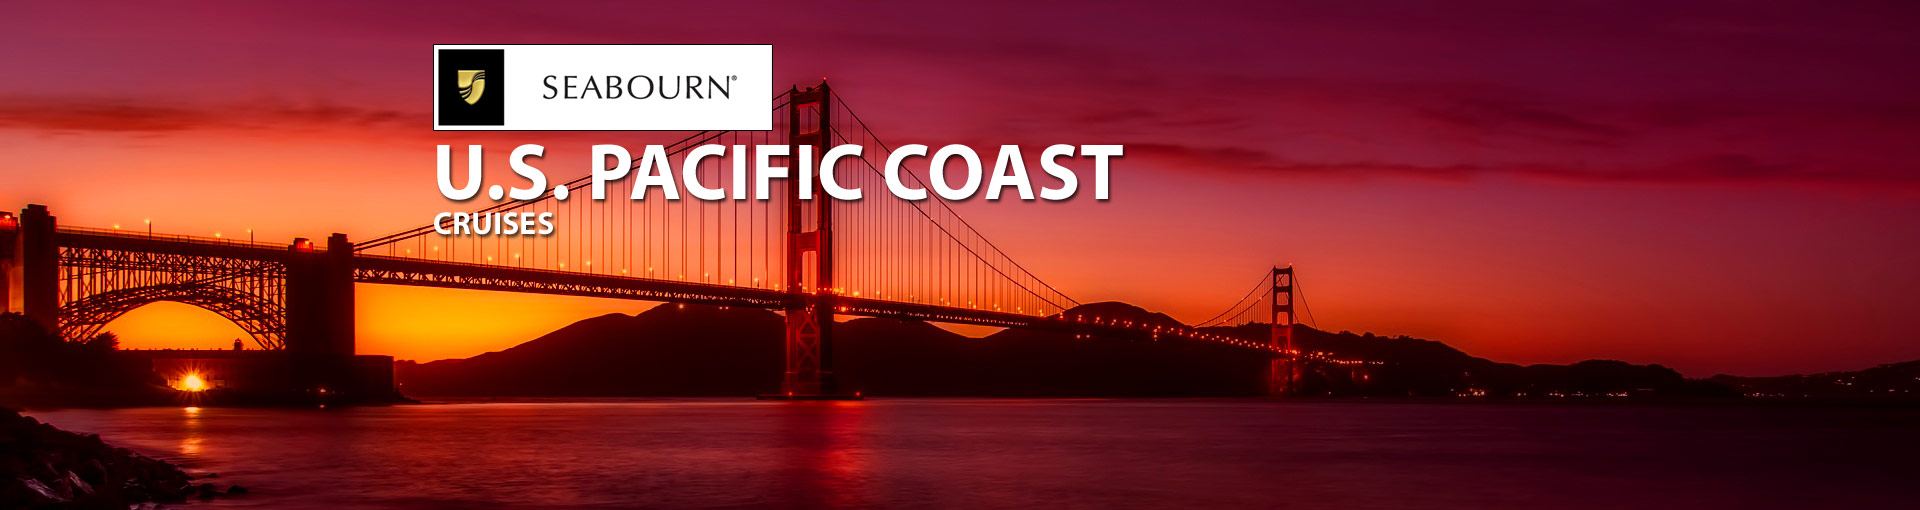 Seabourn US Pacific Coast Cruises